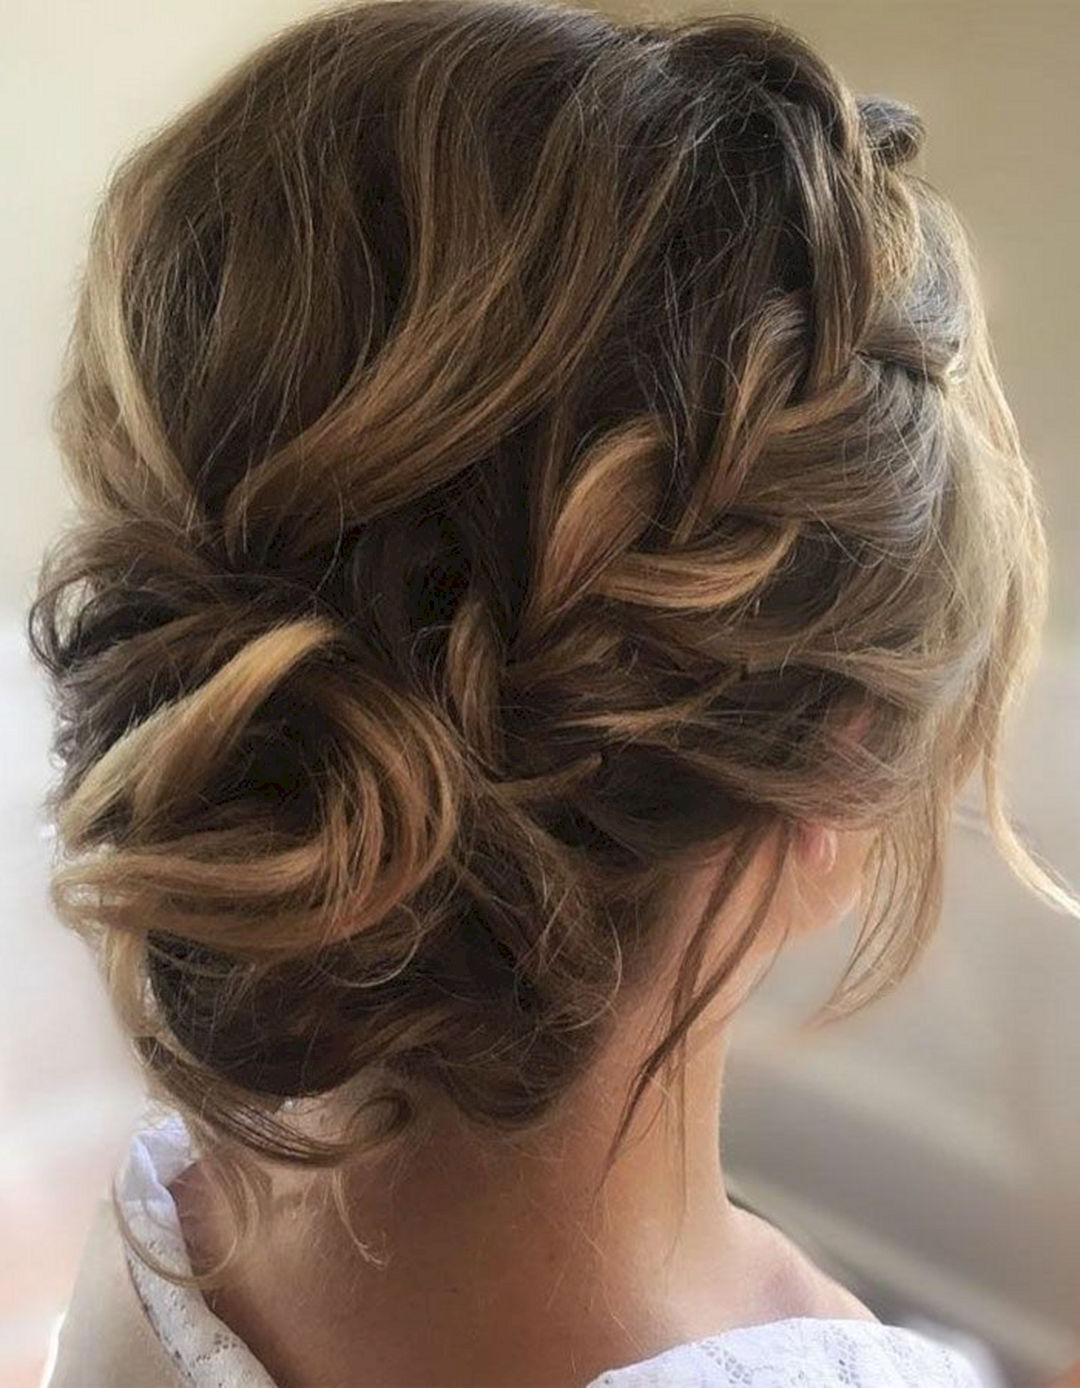 85+ Best Inspirations: Easy Braided Updo Ideas For Short Hair Https With Regard To Short Hairstyles For Prom Updos (Gallery 14 of 25)